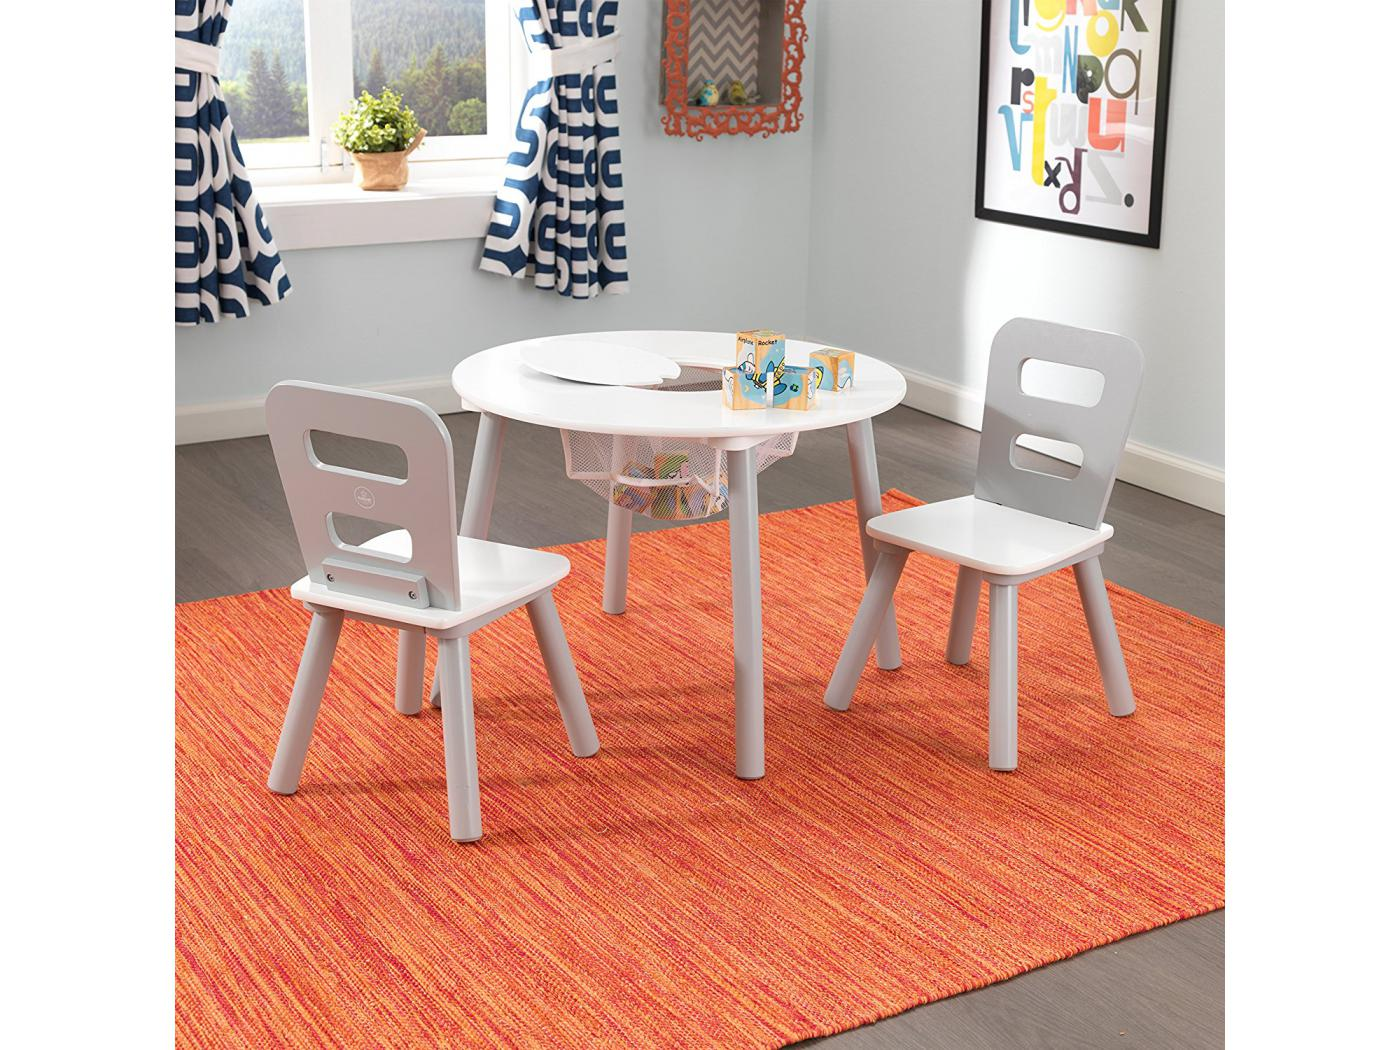 kidkraft ensemble table ronde avec rangement 2 chaises gris et blanc. Black Bedroom Furniture Sets. Home Design Ideas